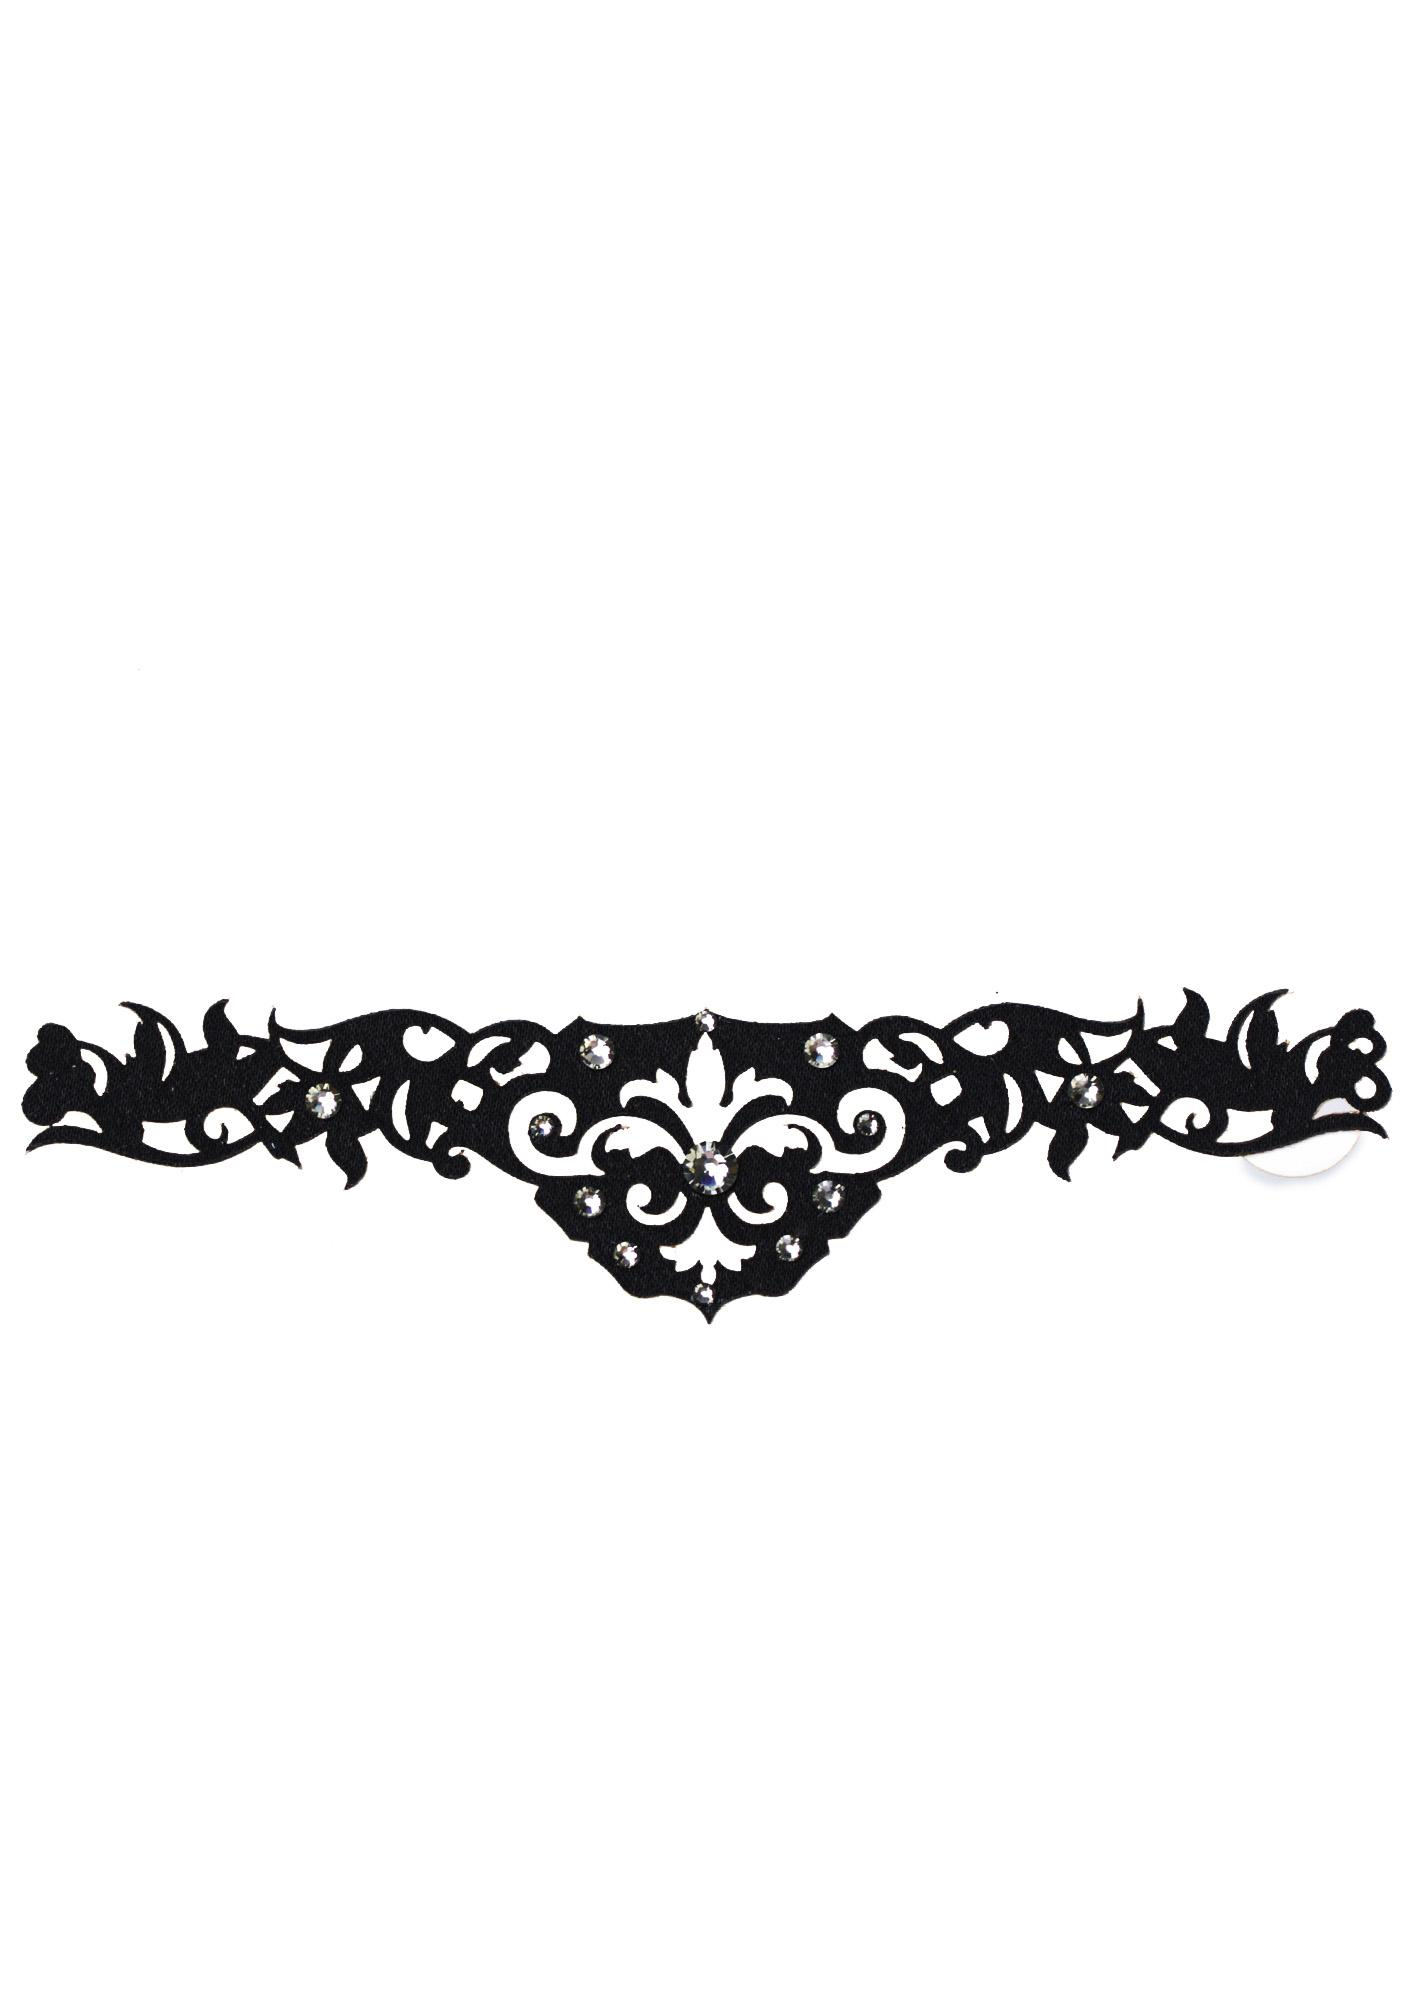 Black Lace Skin Jewelry Amorous Body Jewelry